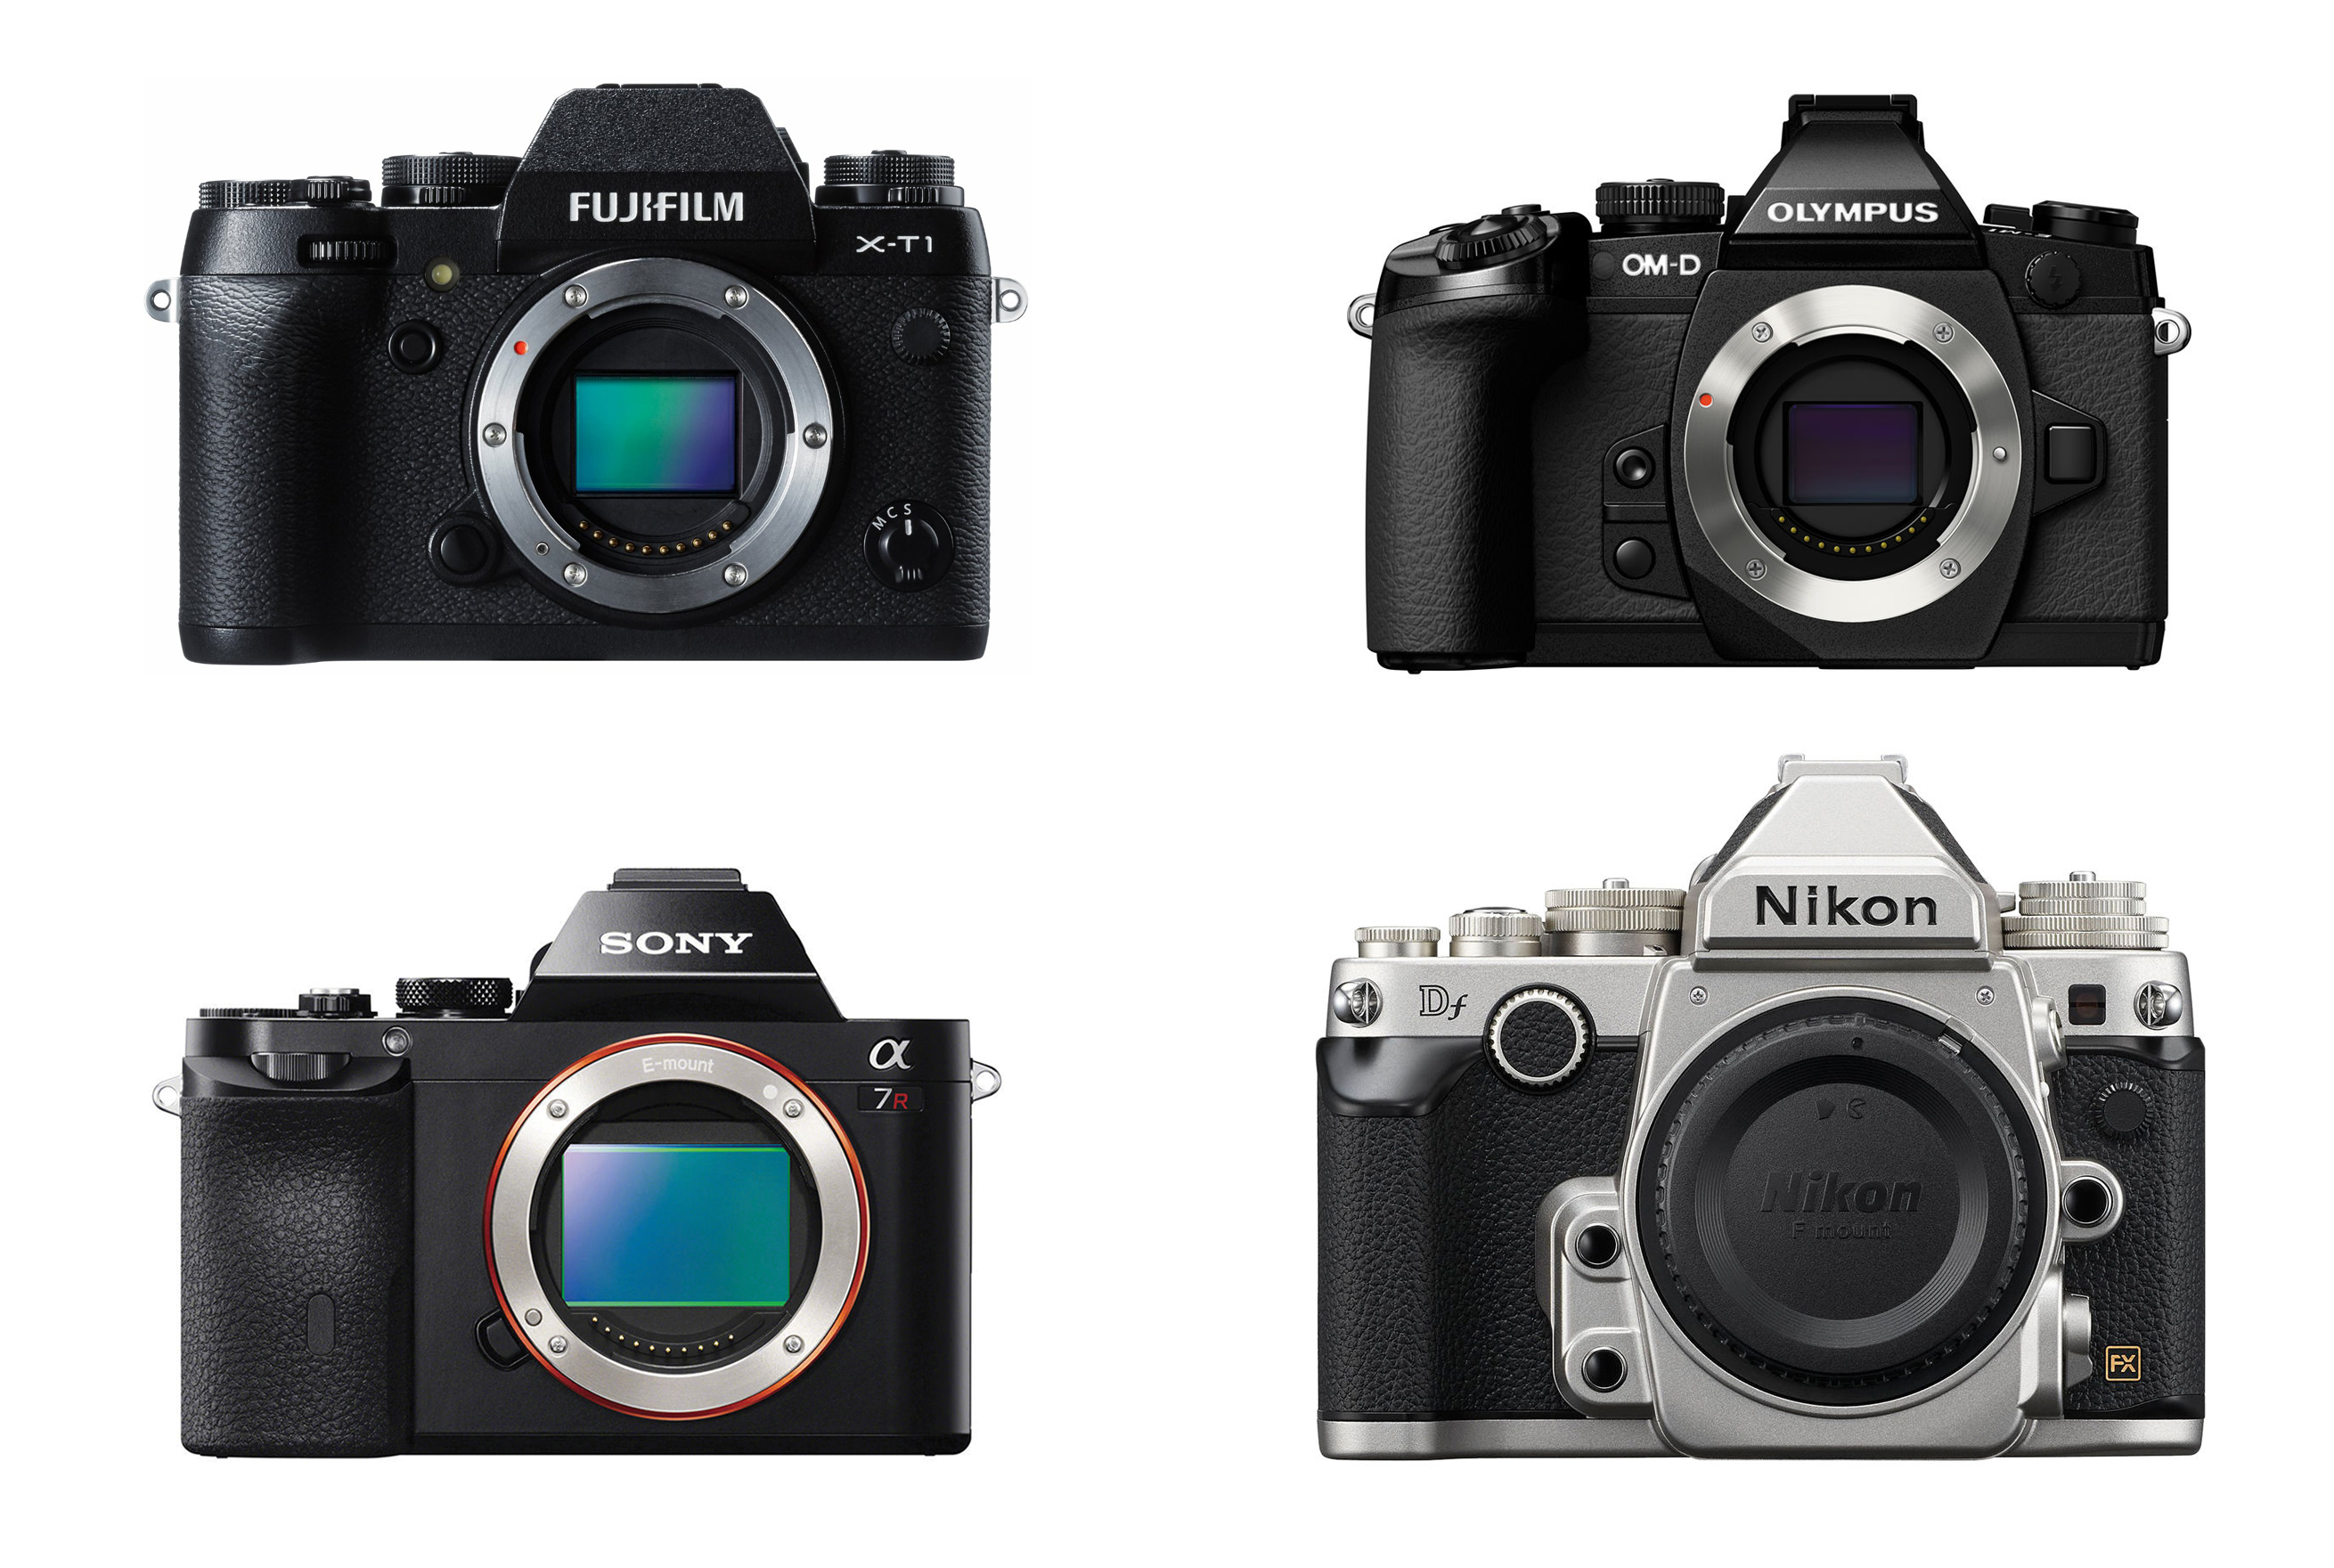 Sony New Cameras For 2014